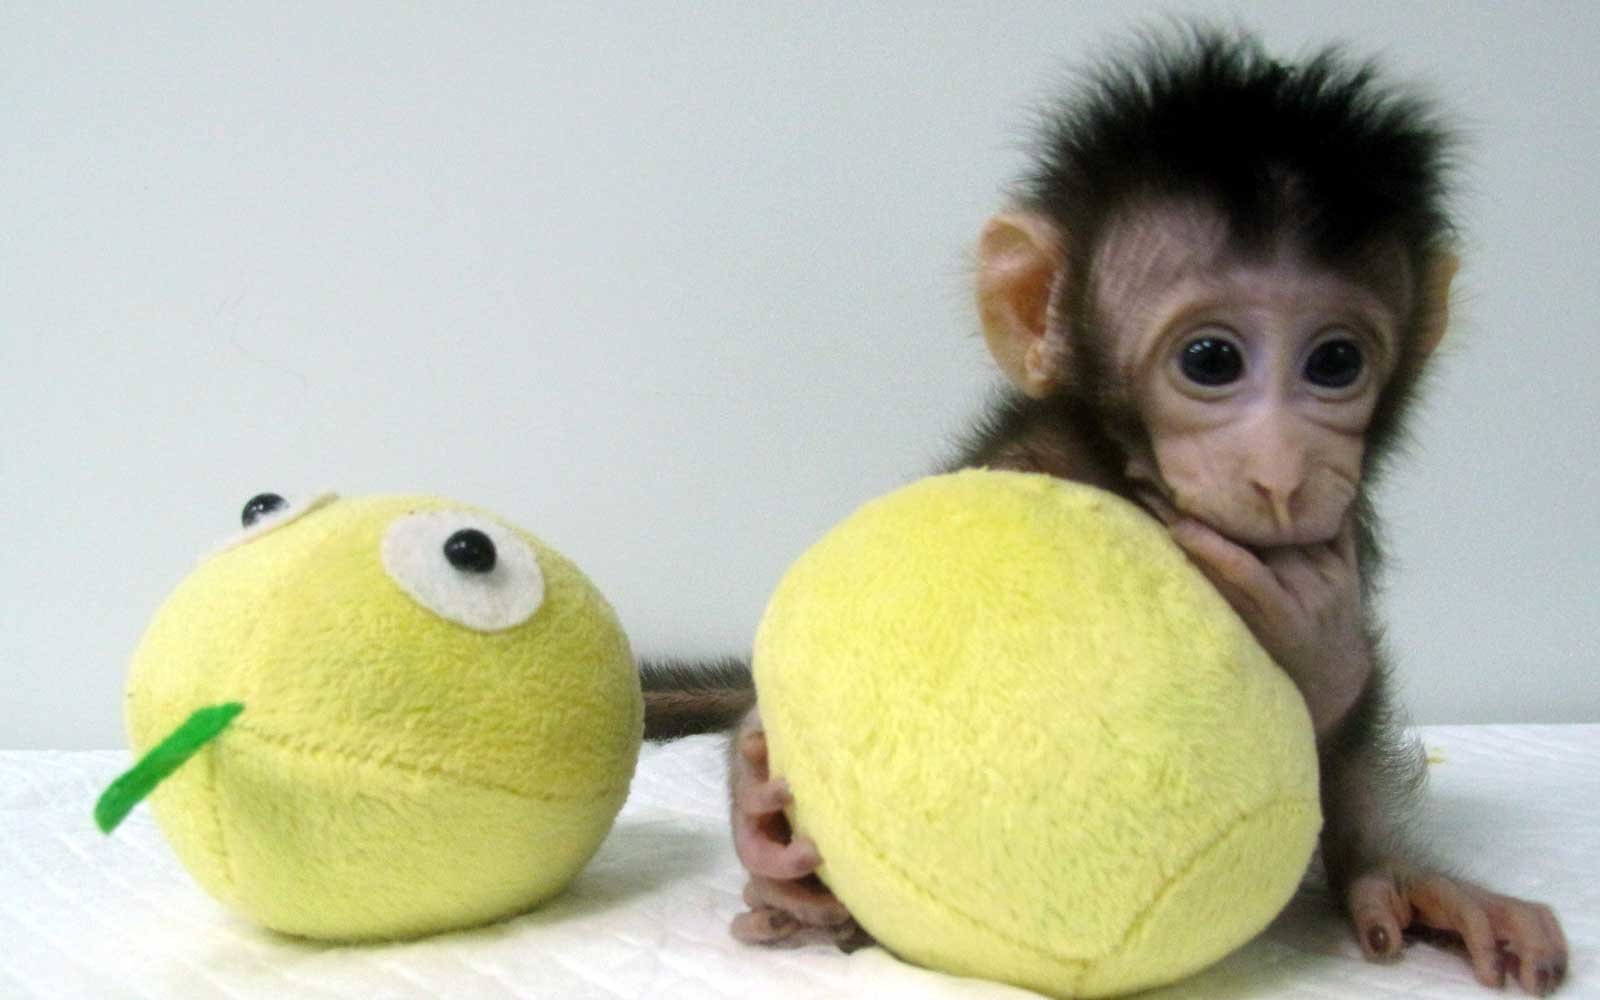 Cloned Monkeys Frolic Together After Landmark Procedure